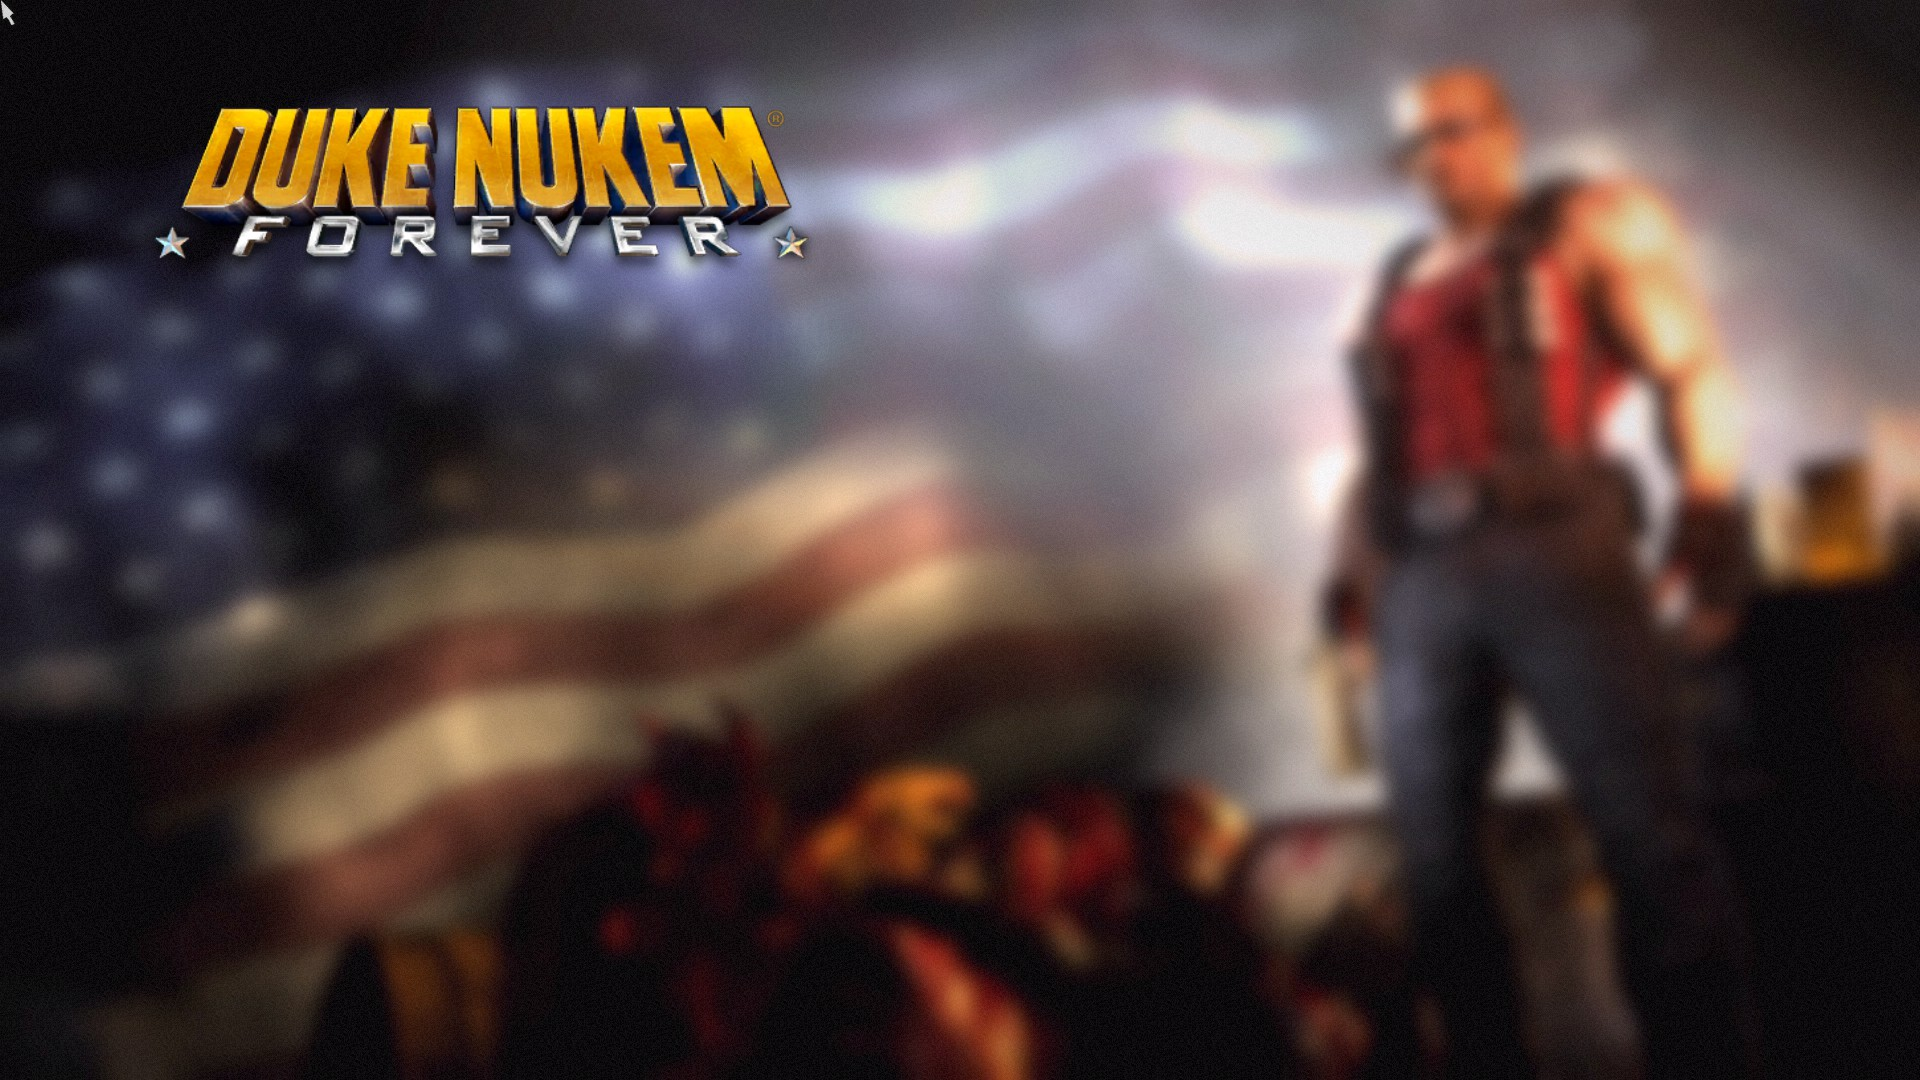 duke nukem forever nudity uncensored